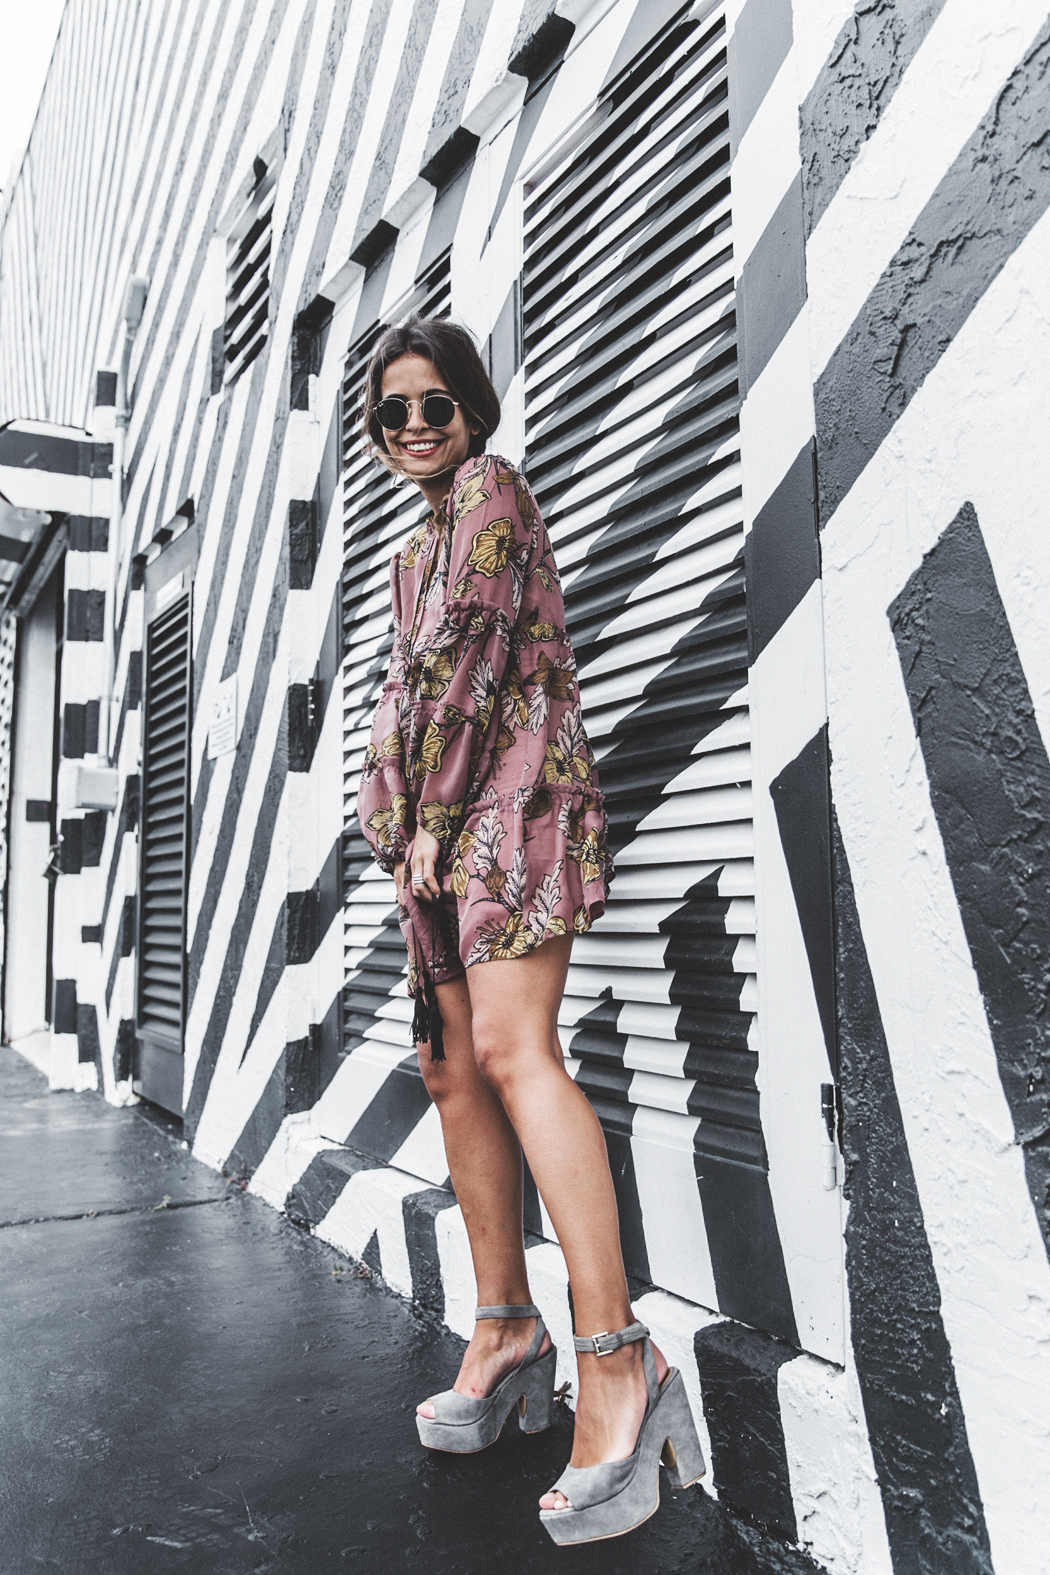 Wynwood-Miami-Black_And_White_Stripes_Wall-For_Love_And_Lemons_Dress-Floral_Print-Wedges-Outfit-26